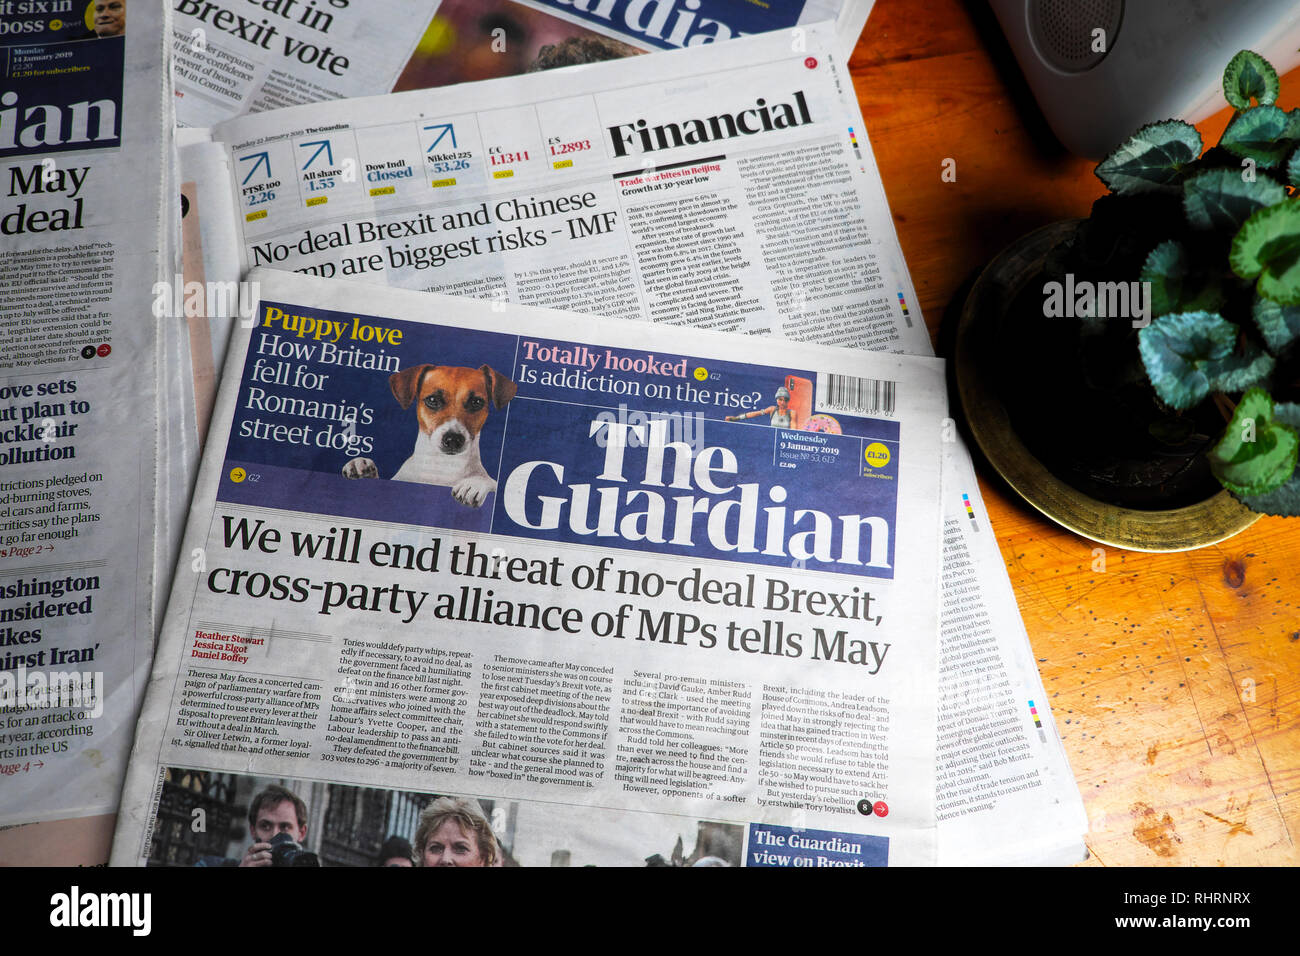 'We will end threat of no-deal Brexit, cross-party alliance of MPs tells May'  front page headline in Guardian newspaper London England UK 9 Jan 2019 - Stock Image